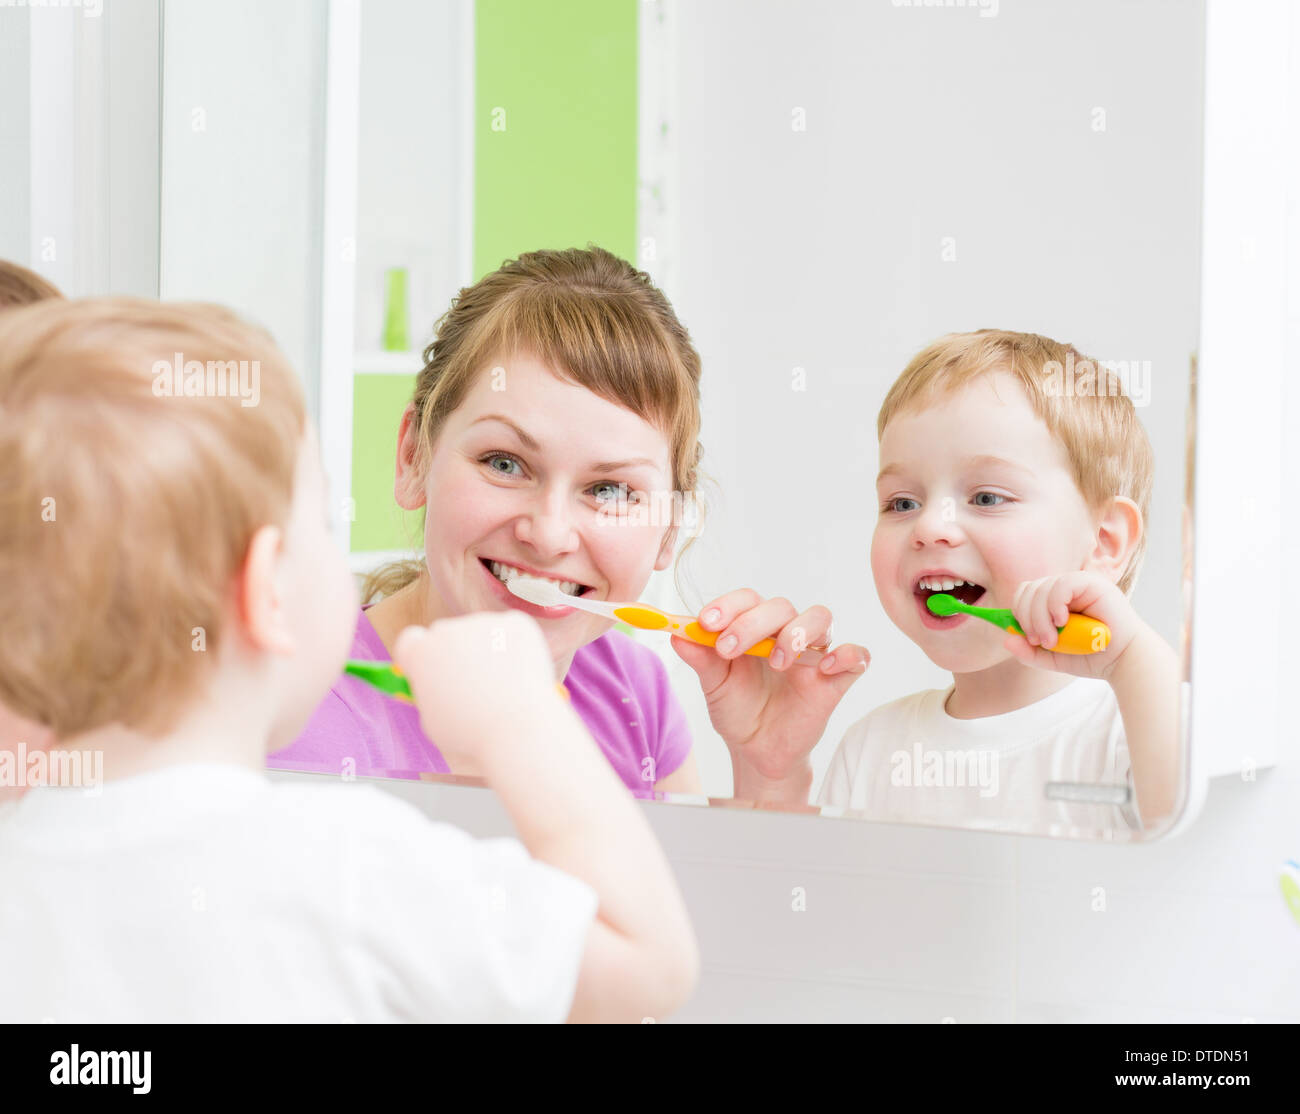 Happy mother and child teeth brushing in bathroom front of mirror - Stock Image